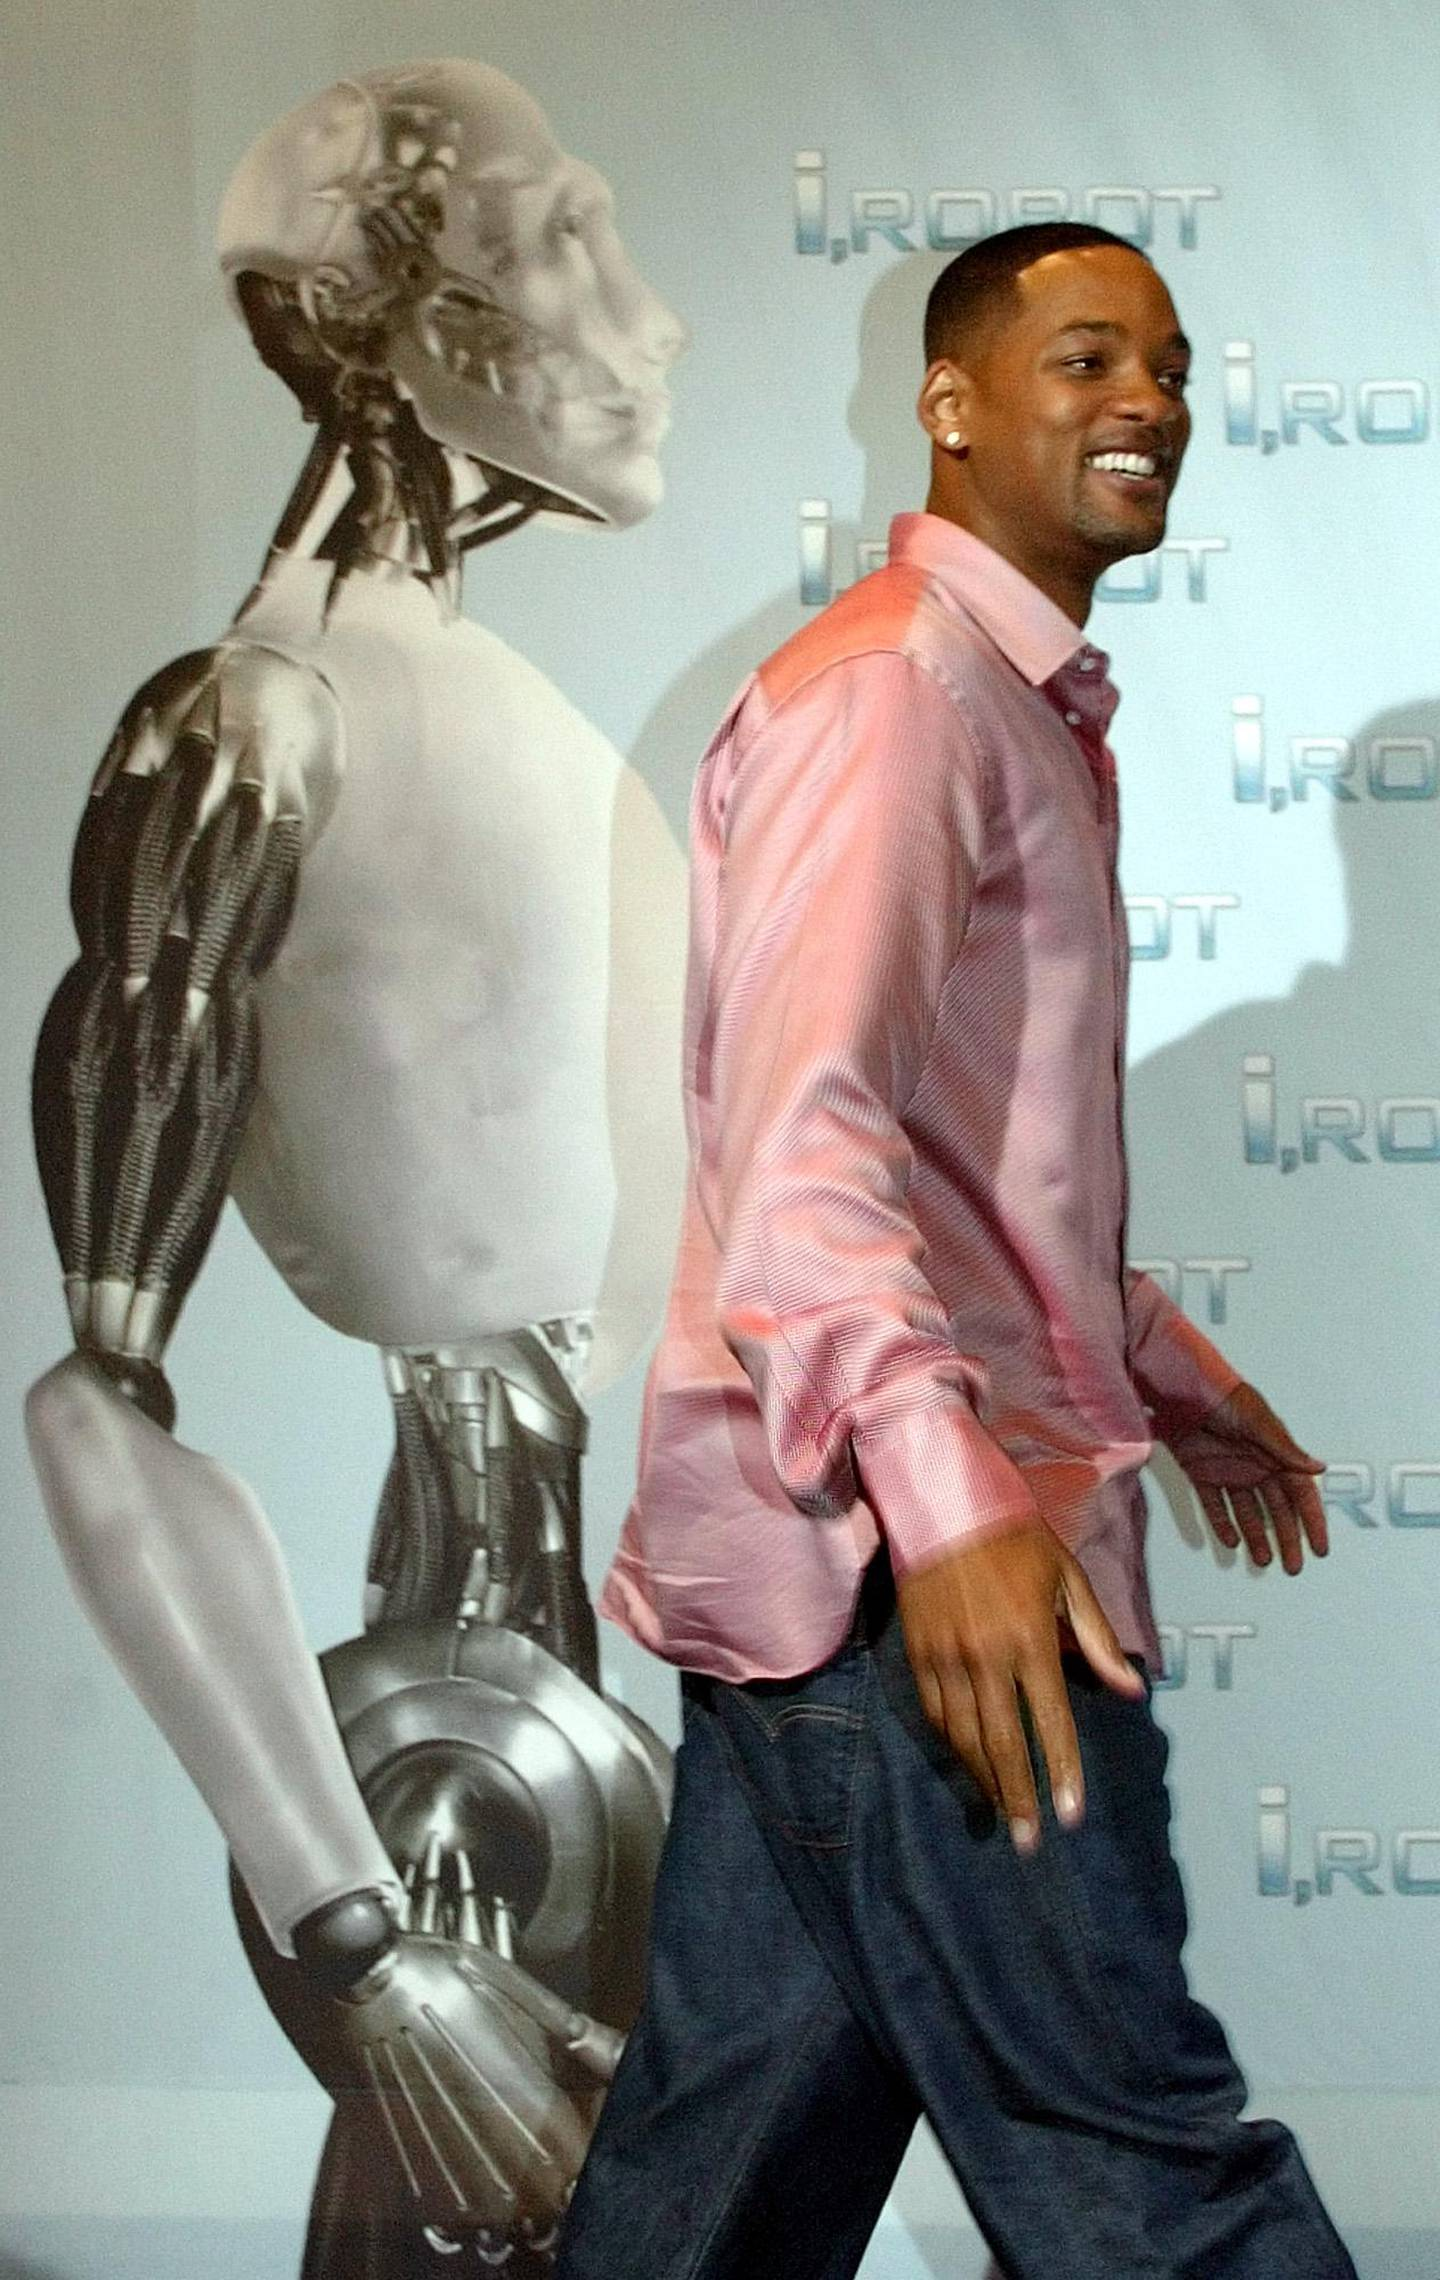 """US actor Will Smith poses for the photographers in front of the movie poster during a photocall prior to the German premiere of his latest film """"I,ROBOT"""" in Berlin Monday, Aug. 2, 2004. (AP Photo/Roberto Pfeil)"""